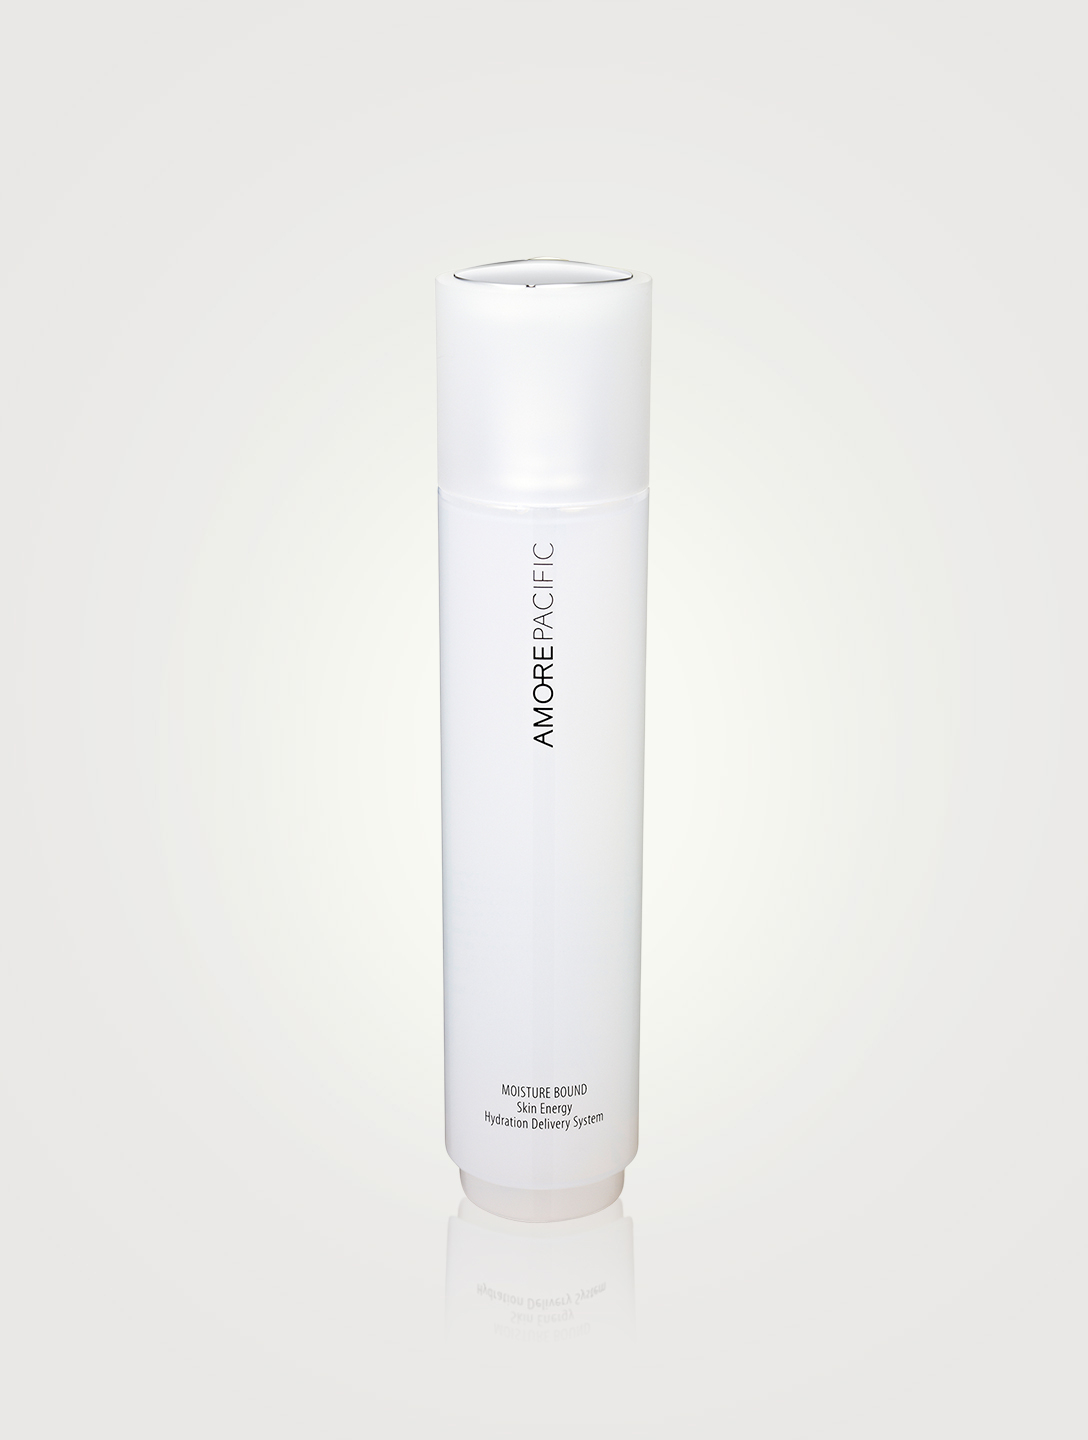 AMOREPACIFIC MOISTURE BOUND Skin Energy Hydration Delivery System Beauty